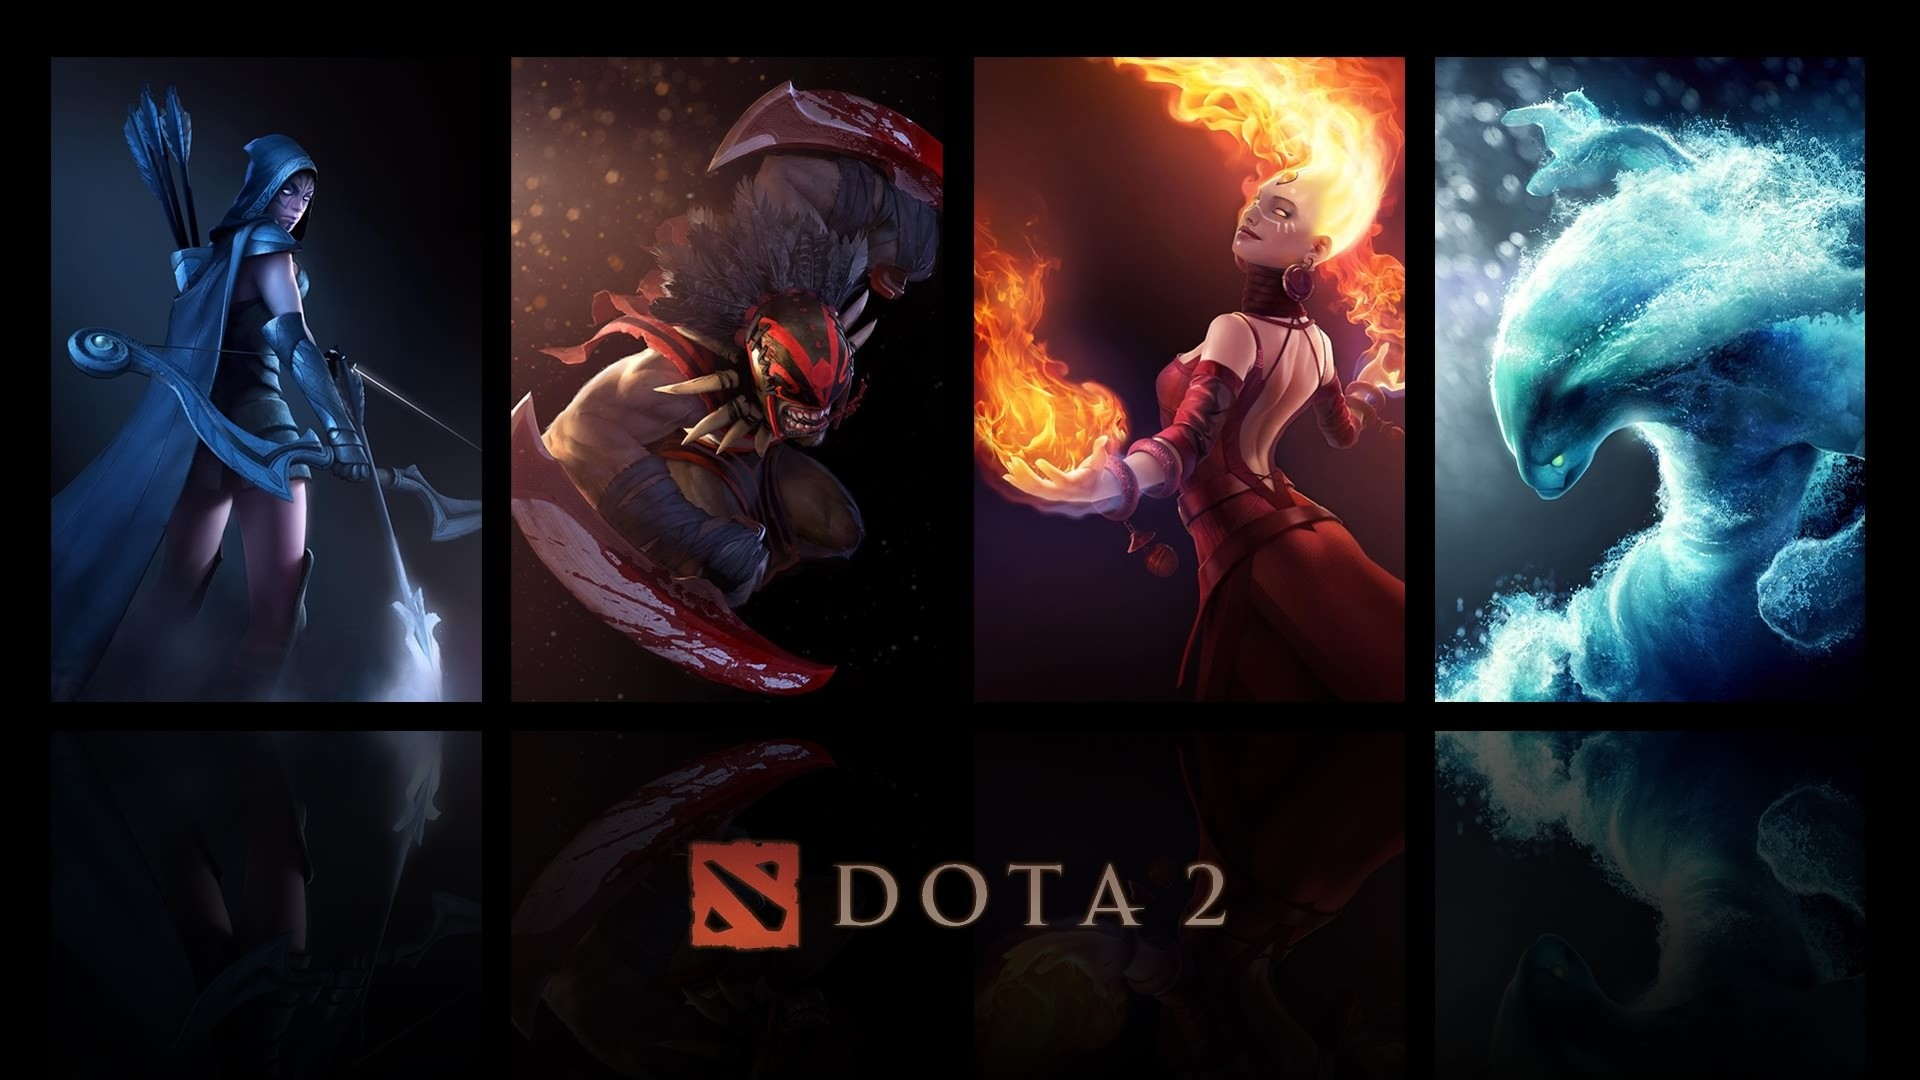 1920x1080 Dota 2 Heroes Wallpaper HD